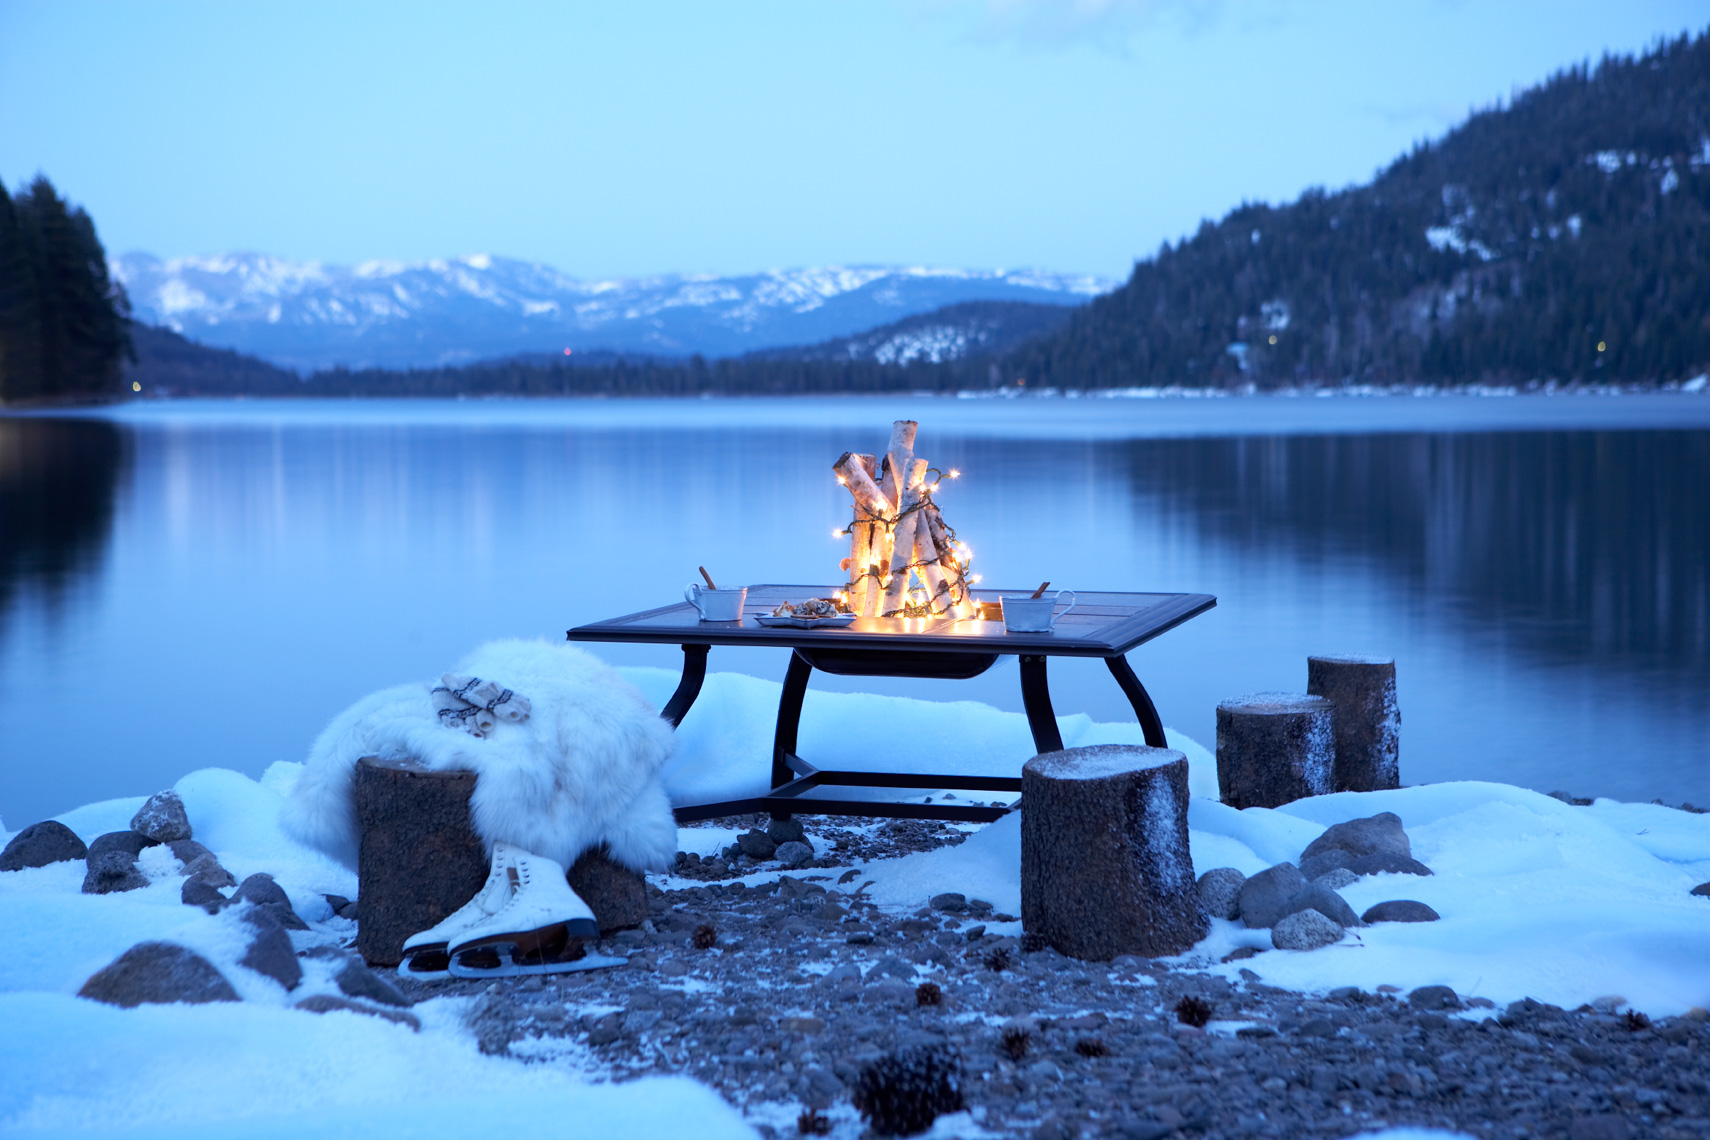 Winter lake scene of lit fire bowl with log chairs and snow on beach San Francisco lifestyle photographer